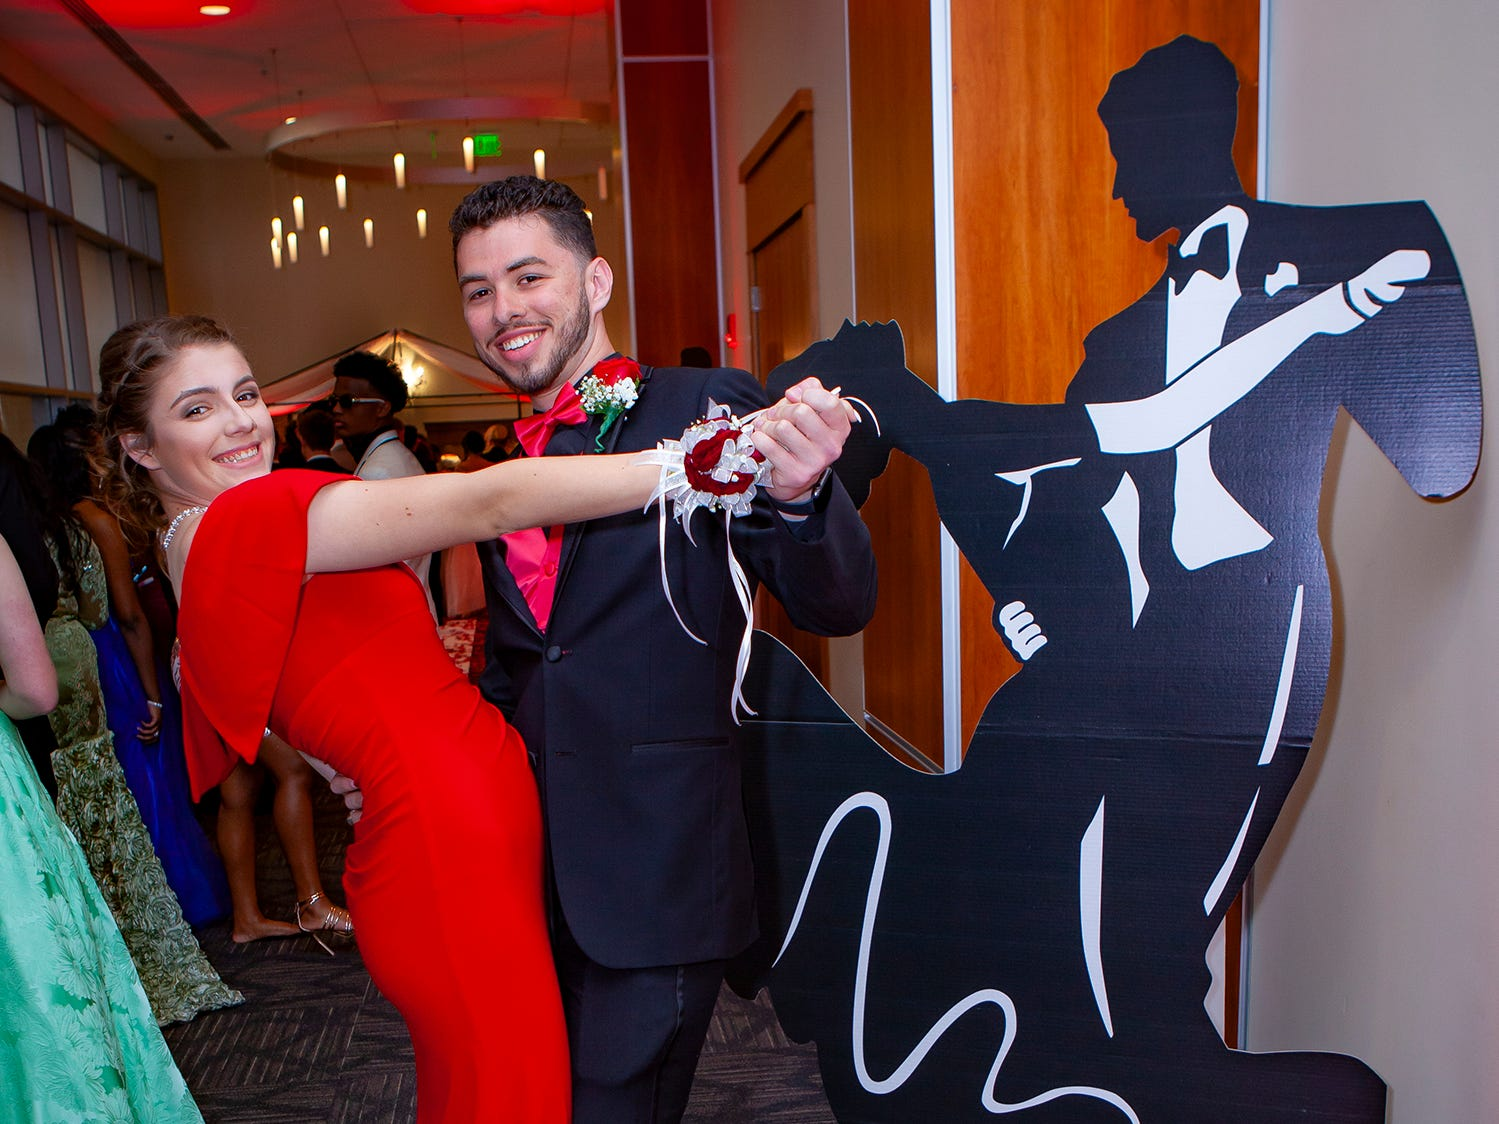 Kayla Dubois and Daniel Caravaca at Riverdale's prom, held Saturday, April 27, 2019 at MTSU's Student Union Building.